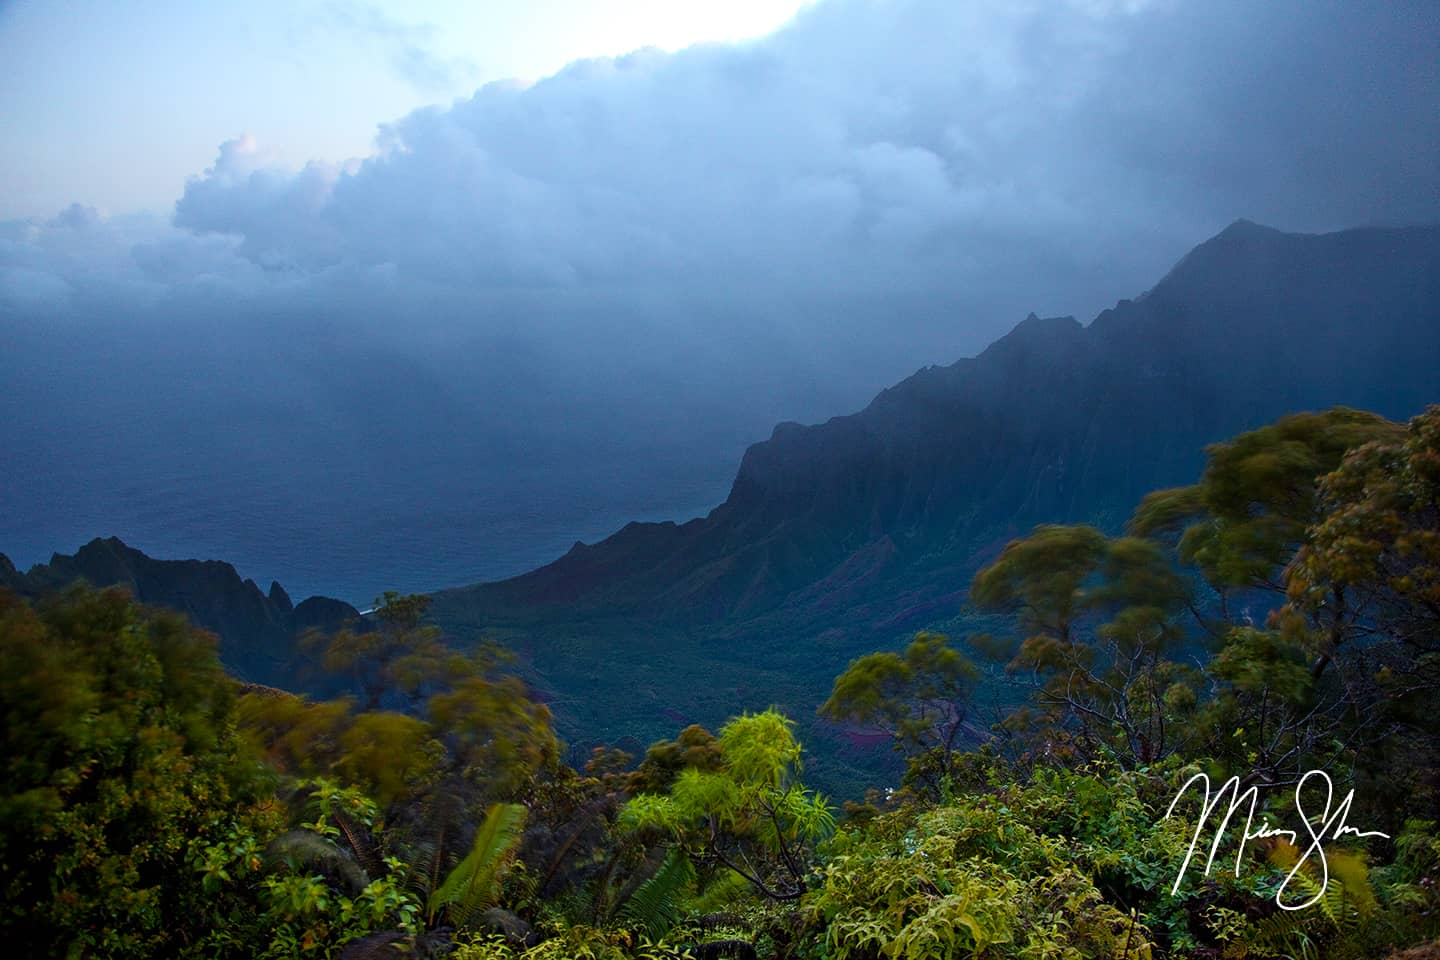 Early Morning at Kalalau Valley Lookout